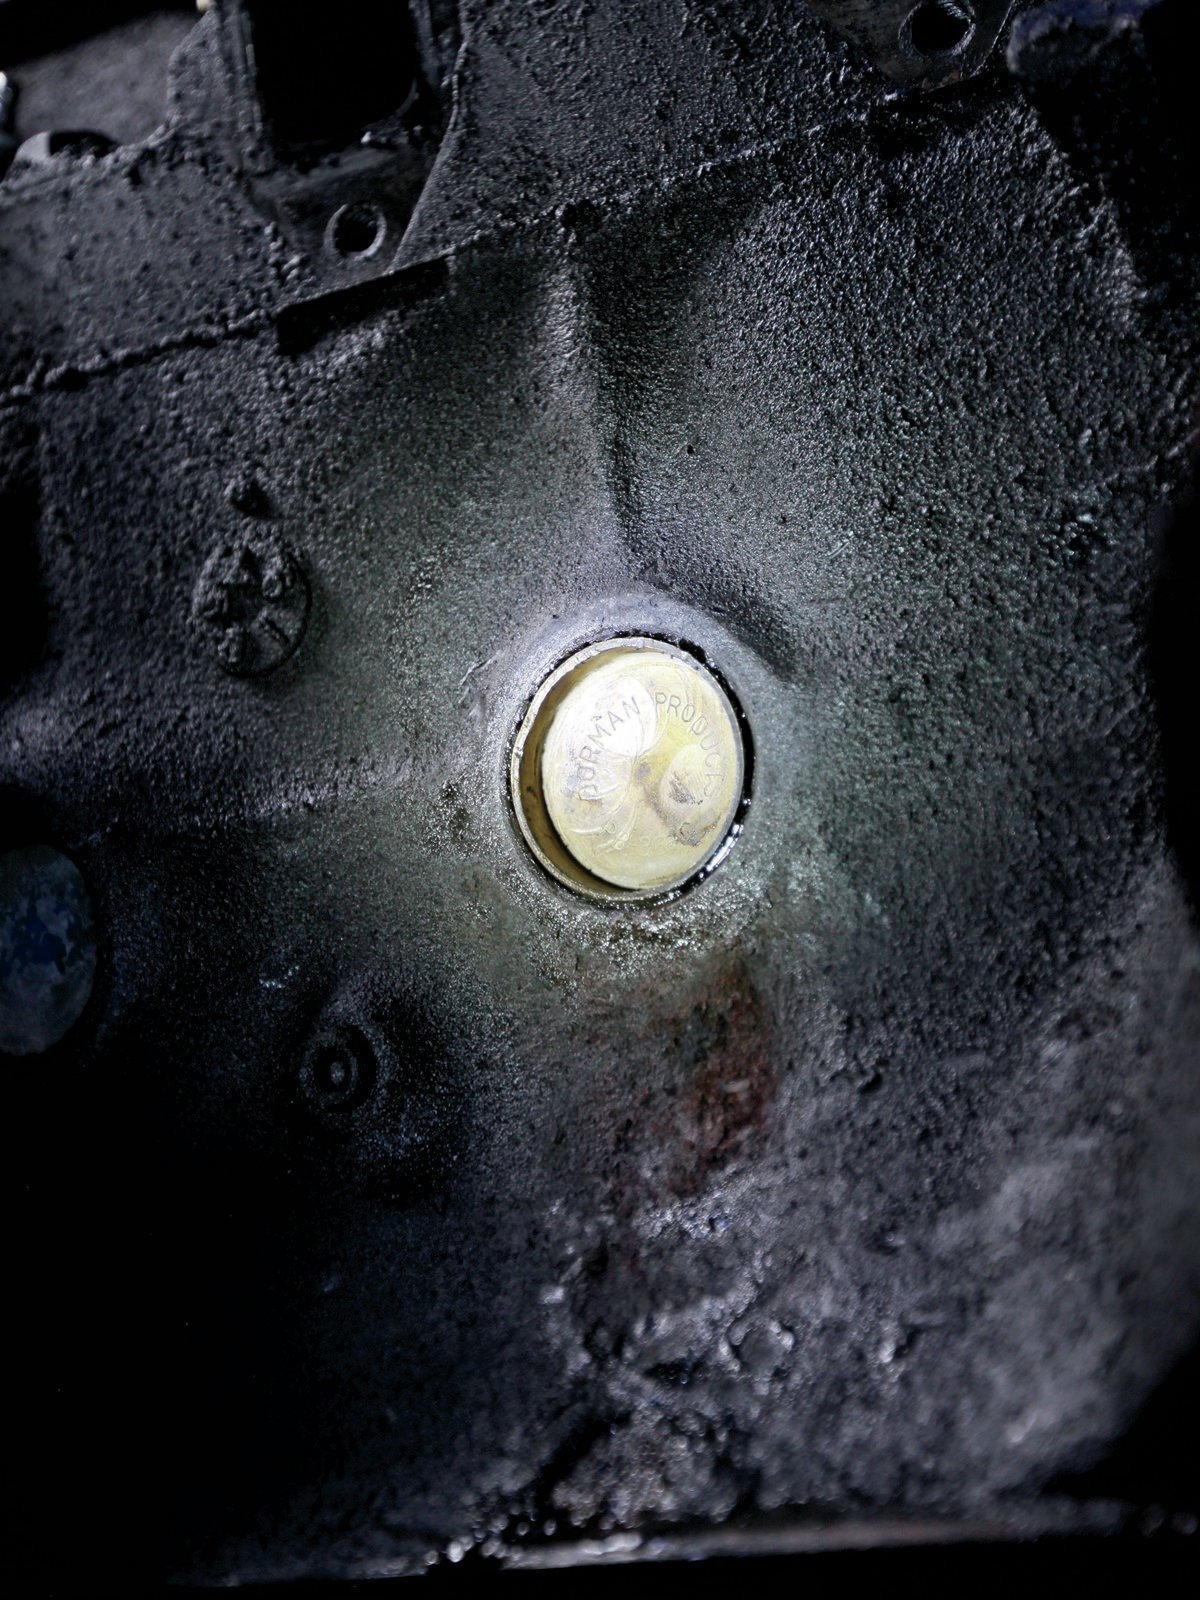 13. For a good seal use Permatex Form-a-Gasket on the opening. I like to replace steel freeze plugs with brass.